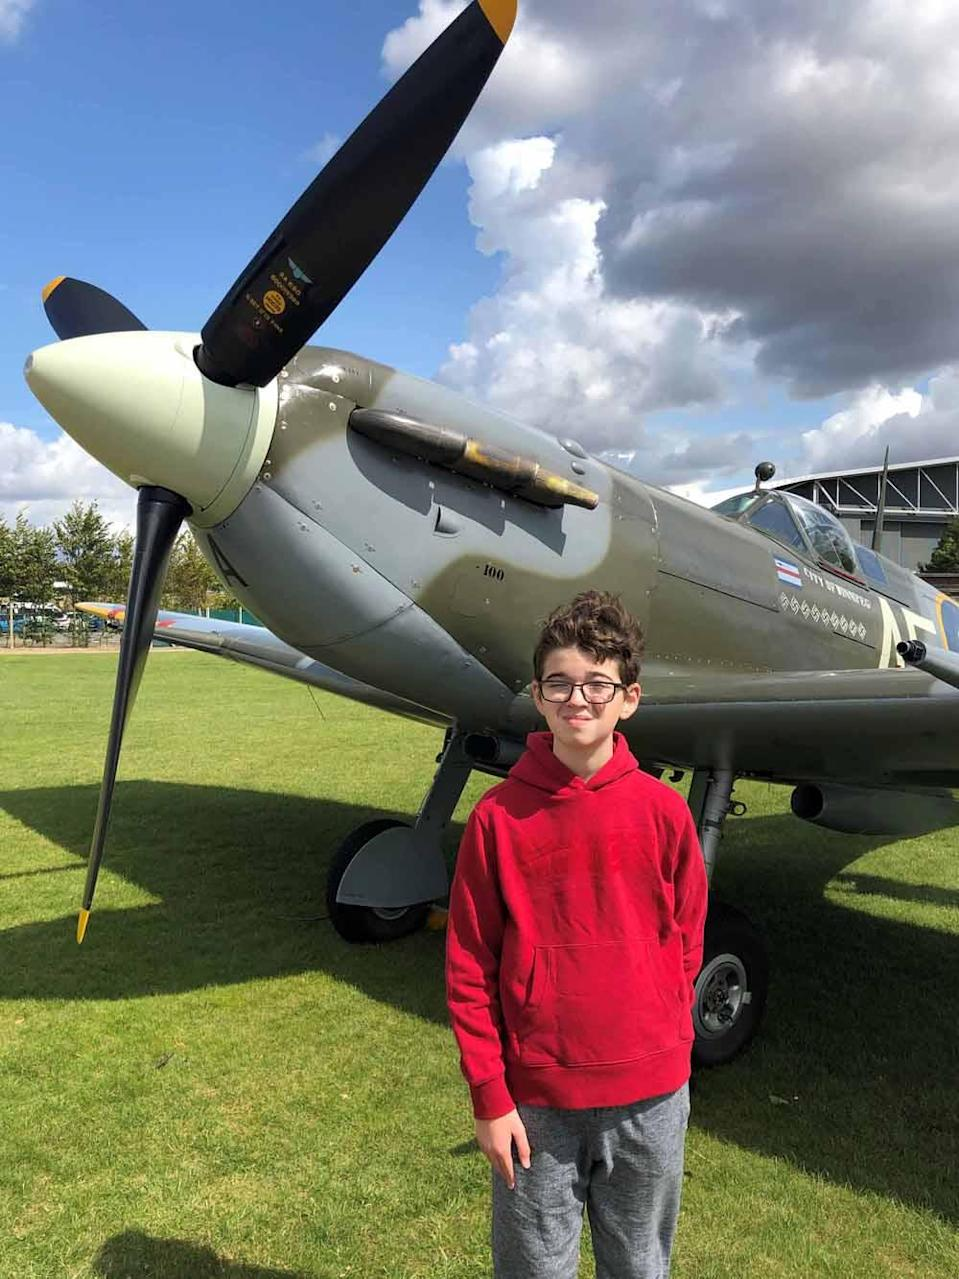 Daniel, who loves planes, pictured at Ducksford International Air Museum in 2018. PA REAL LIFE COLLECT